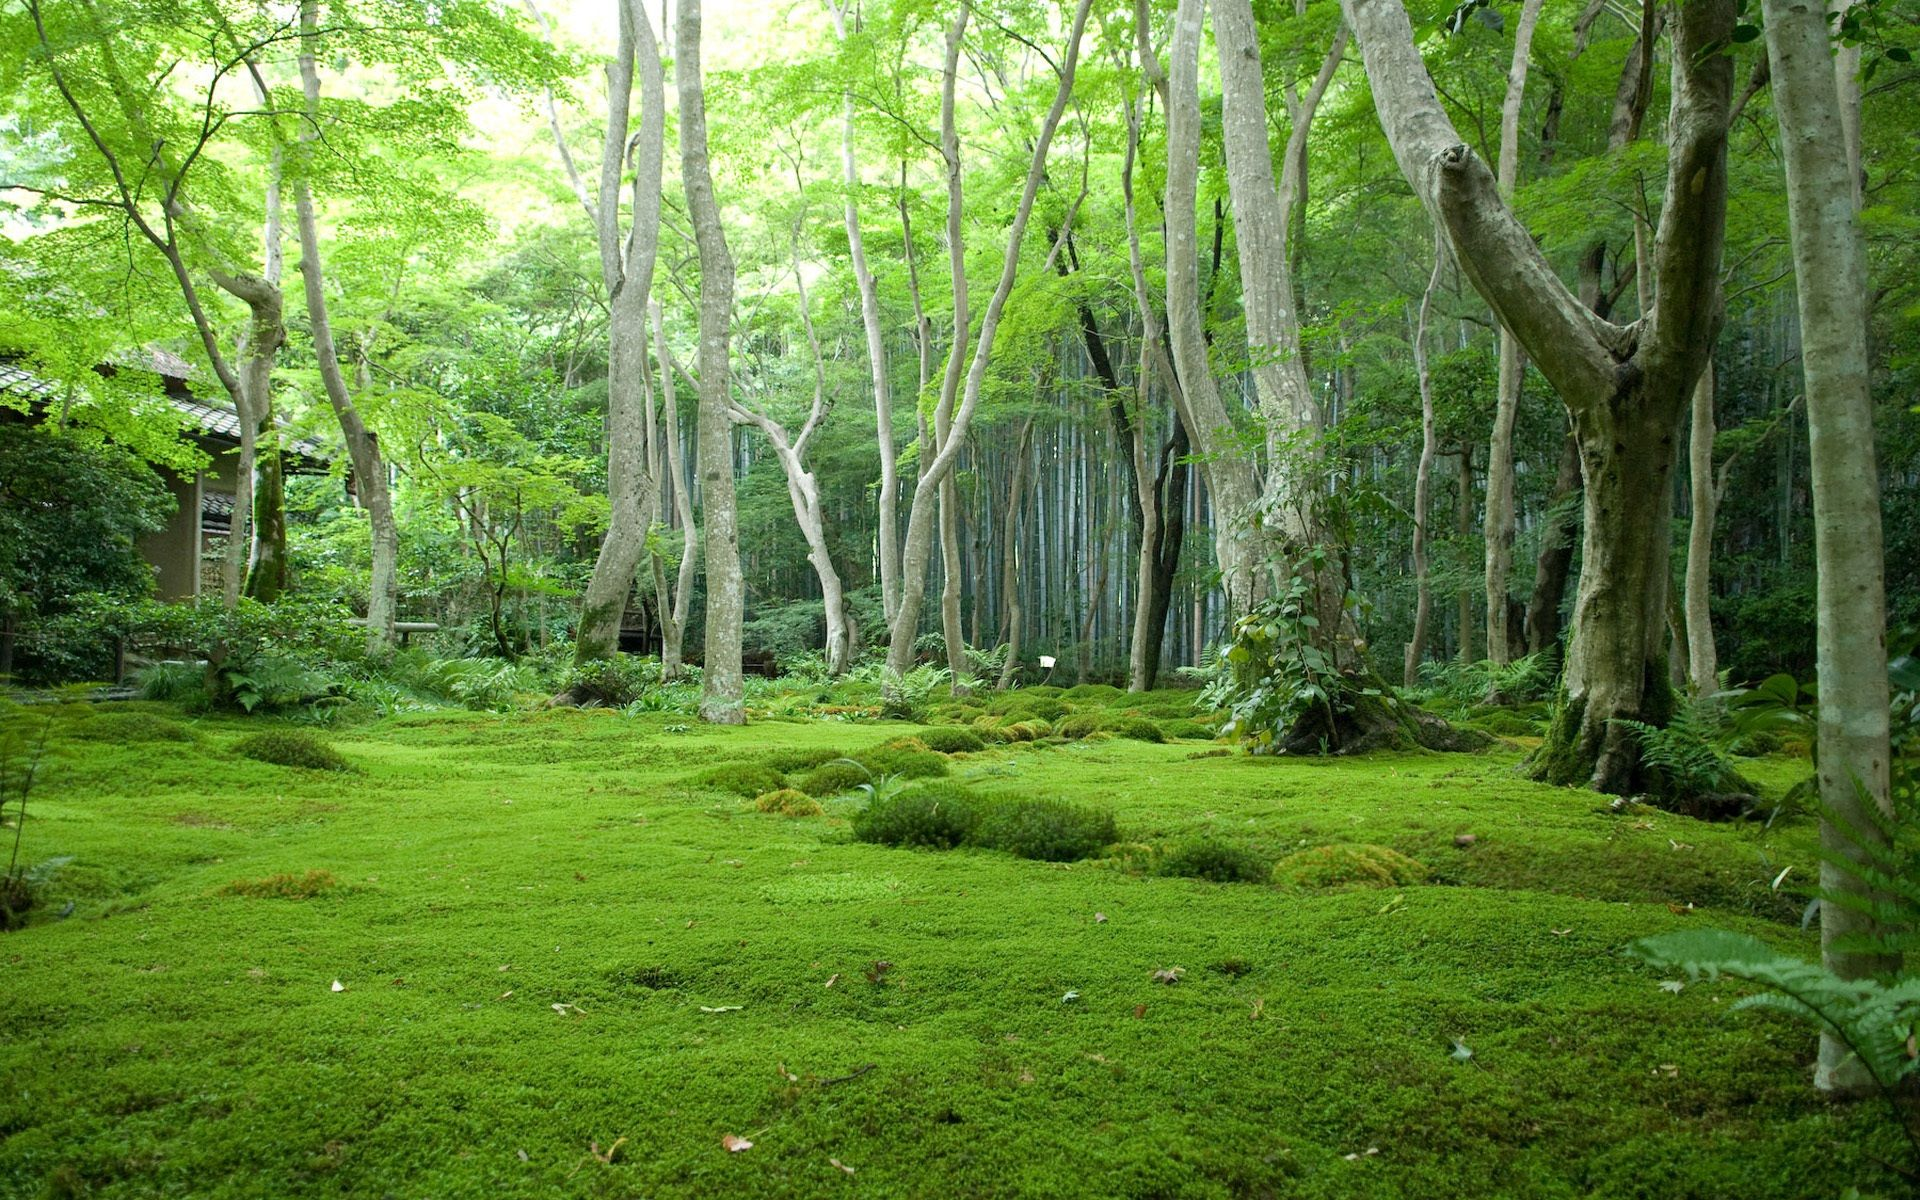 Pin By Bernhard Forcher On Into The Wild Forest Wallpaper Green Nature Forest Background